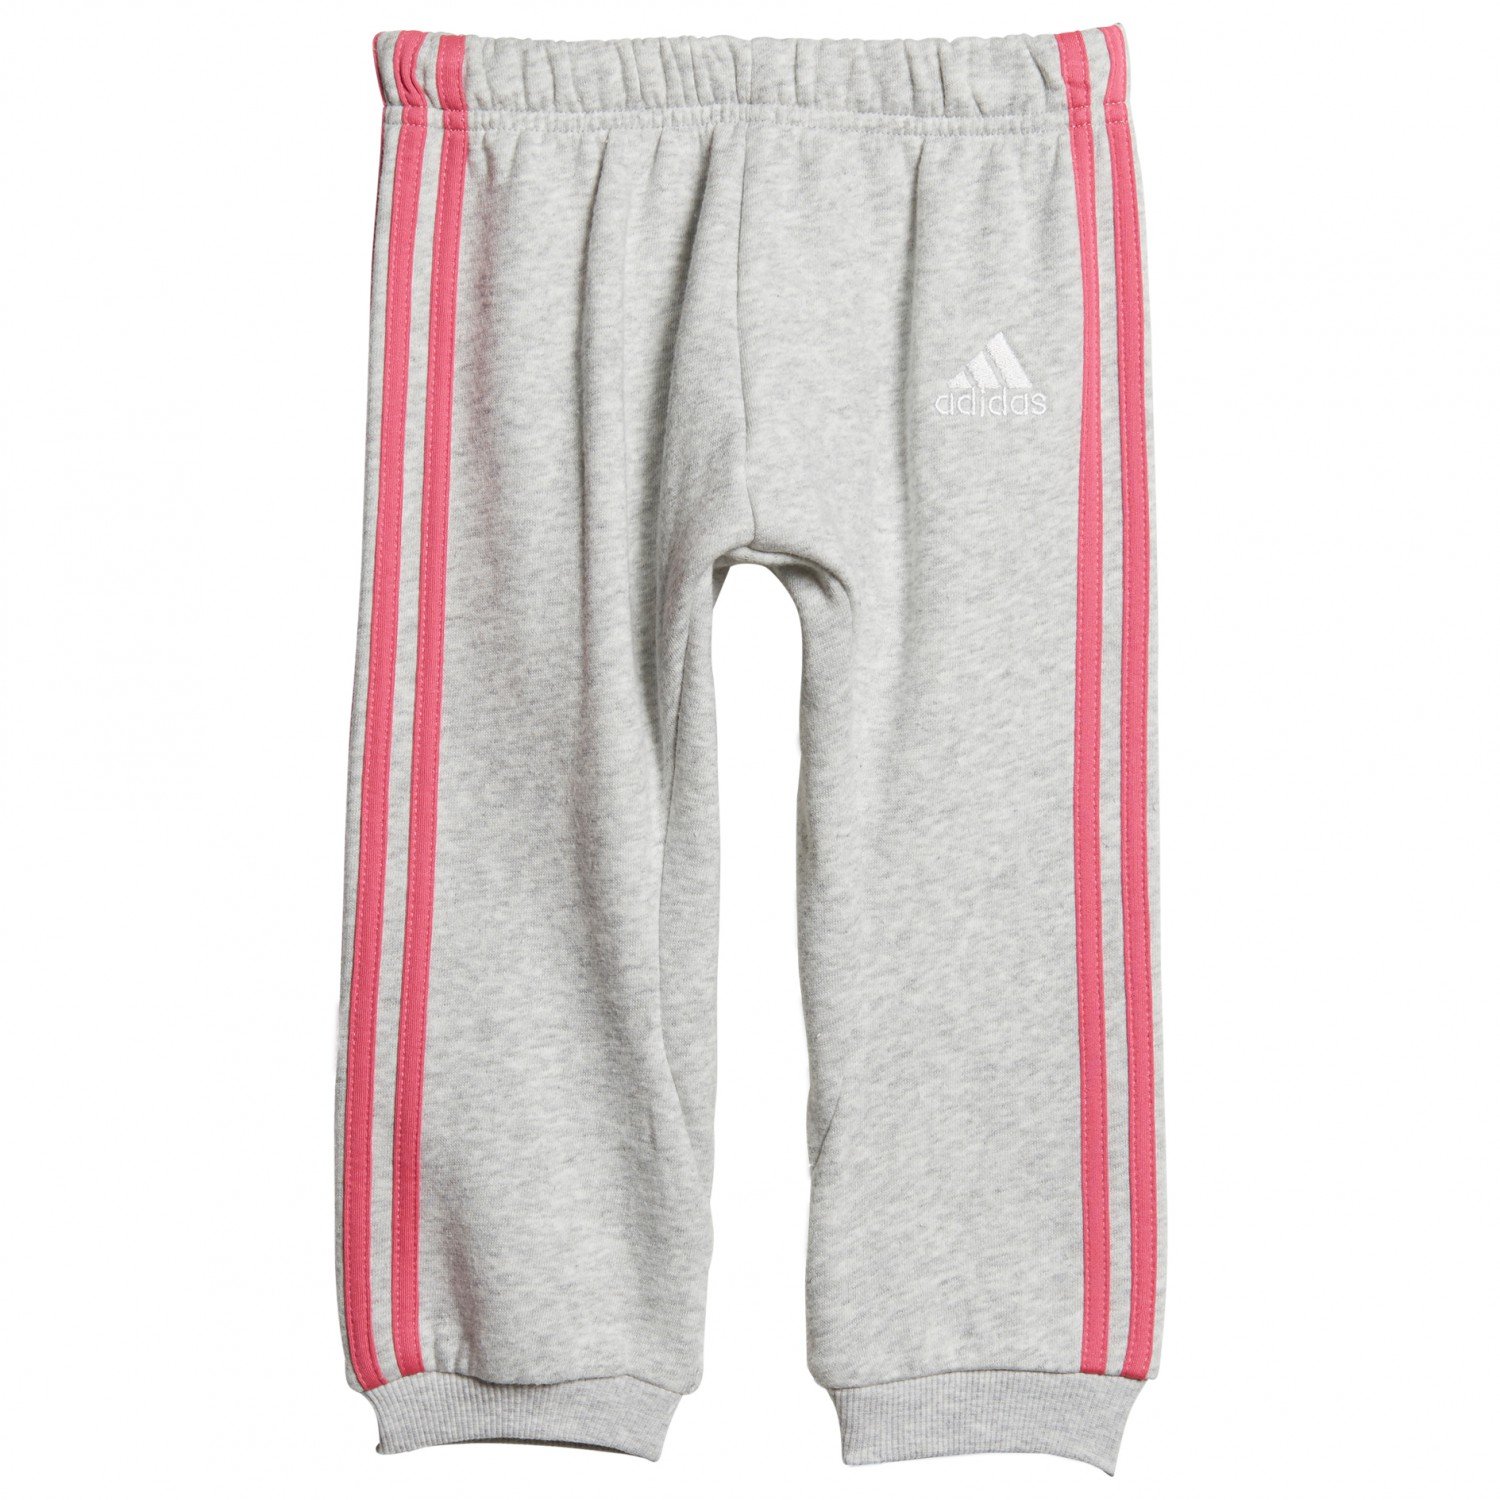 Adidas Fleece 3 Streifen Jogginganzug Sweat